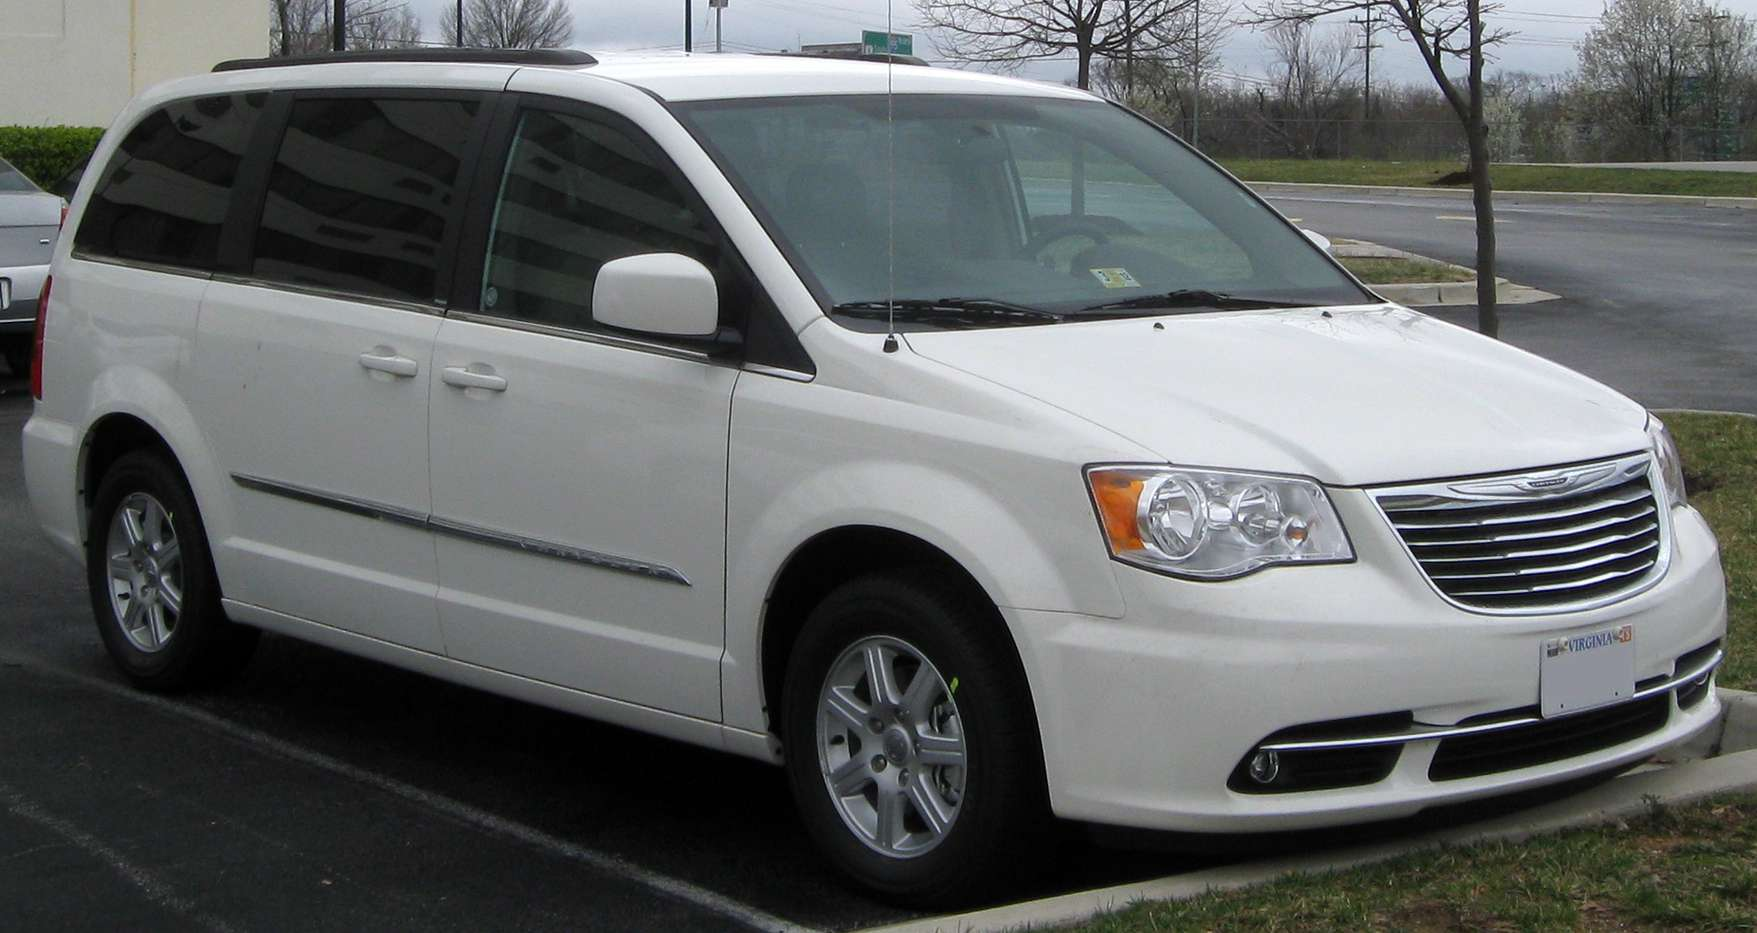 Chrysler Caravan #7168487